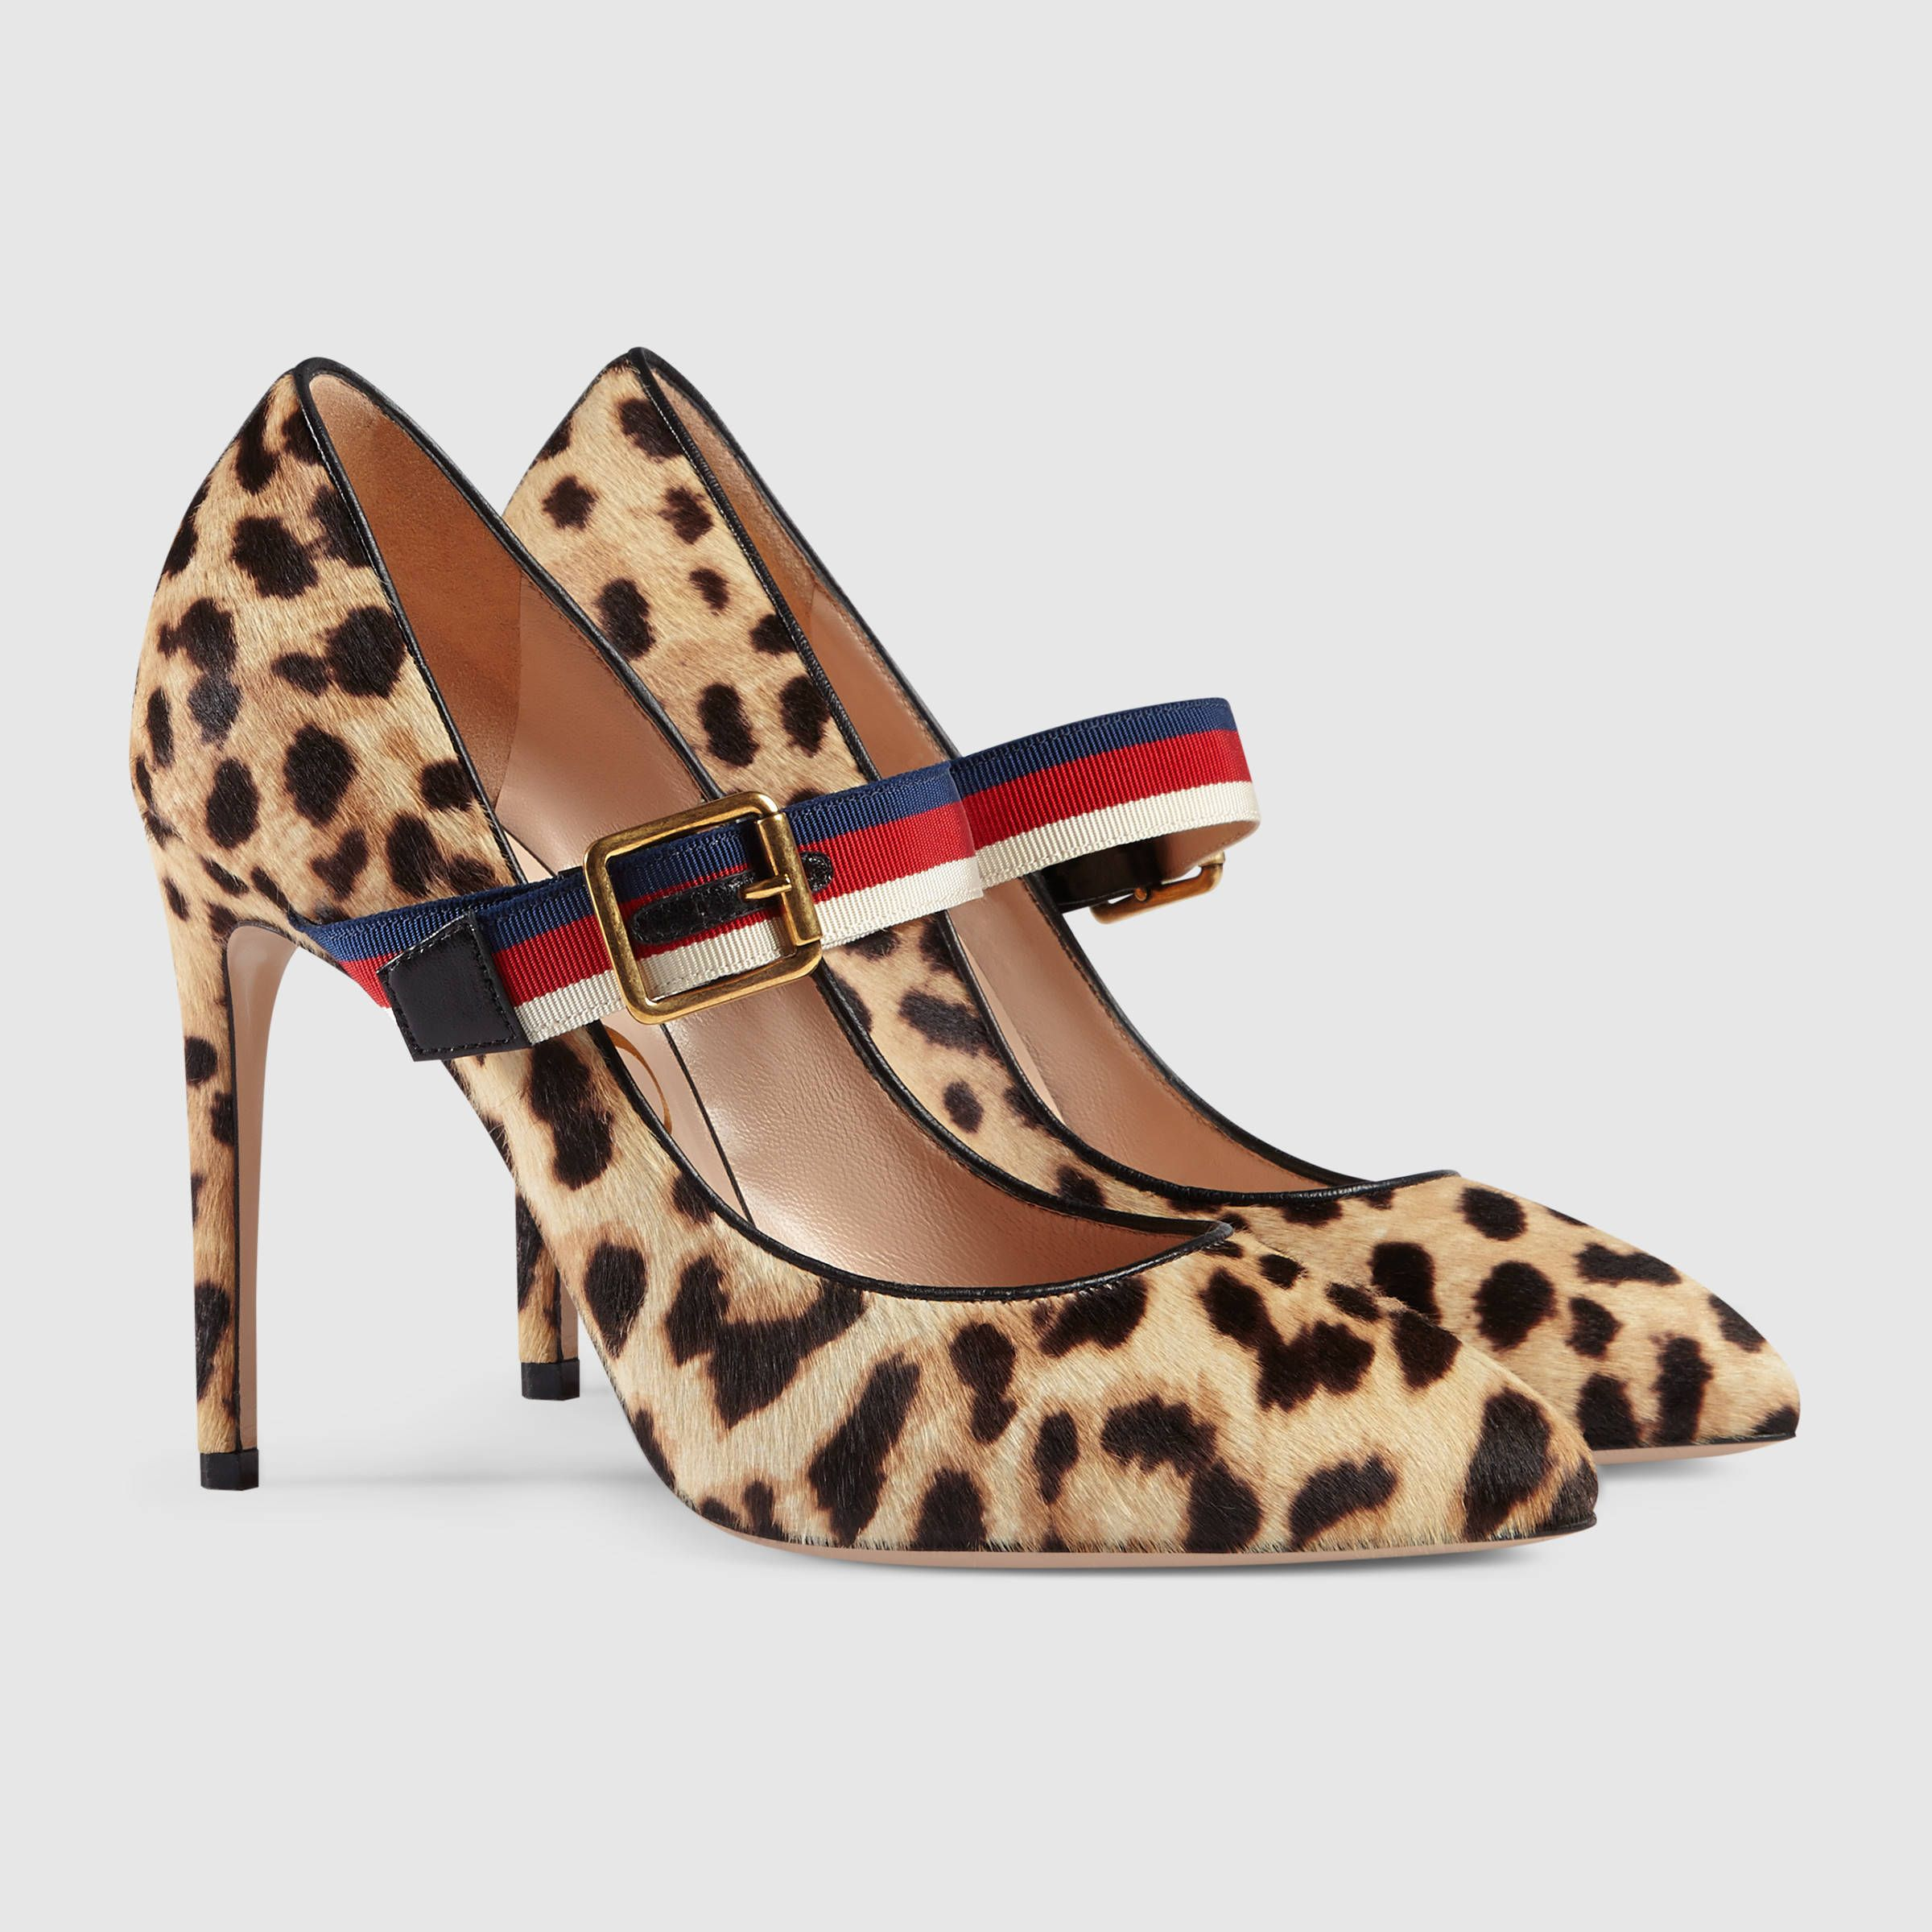 aac7bdd84 Gucci Sylvie leopard print calf hair pump Detail 2 | SHOES | Gucci ...